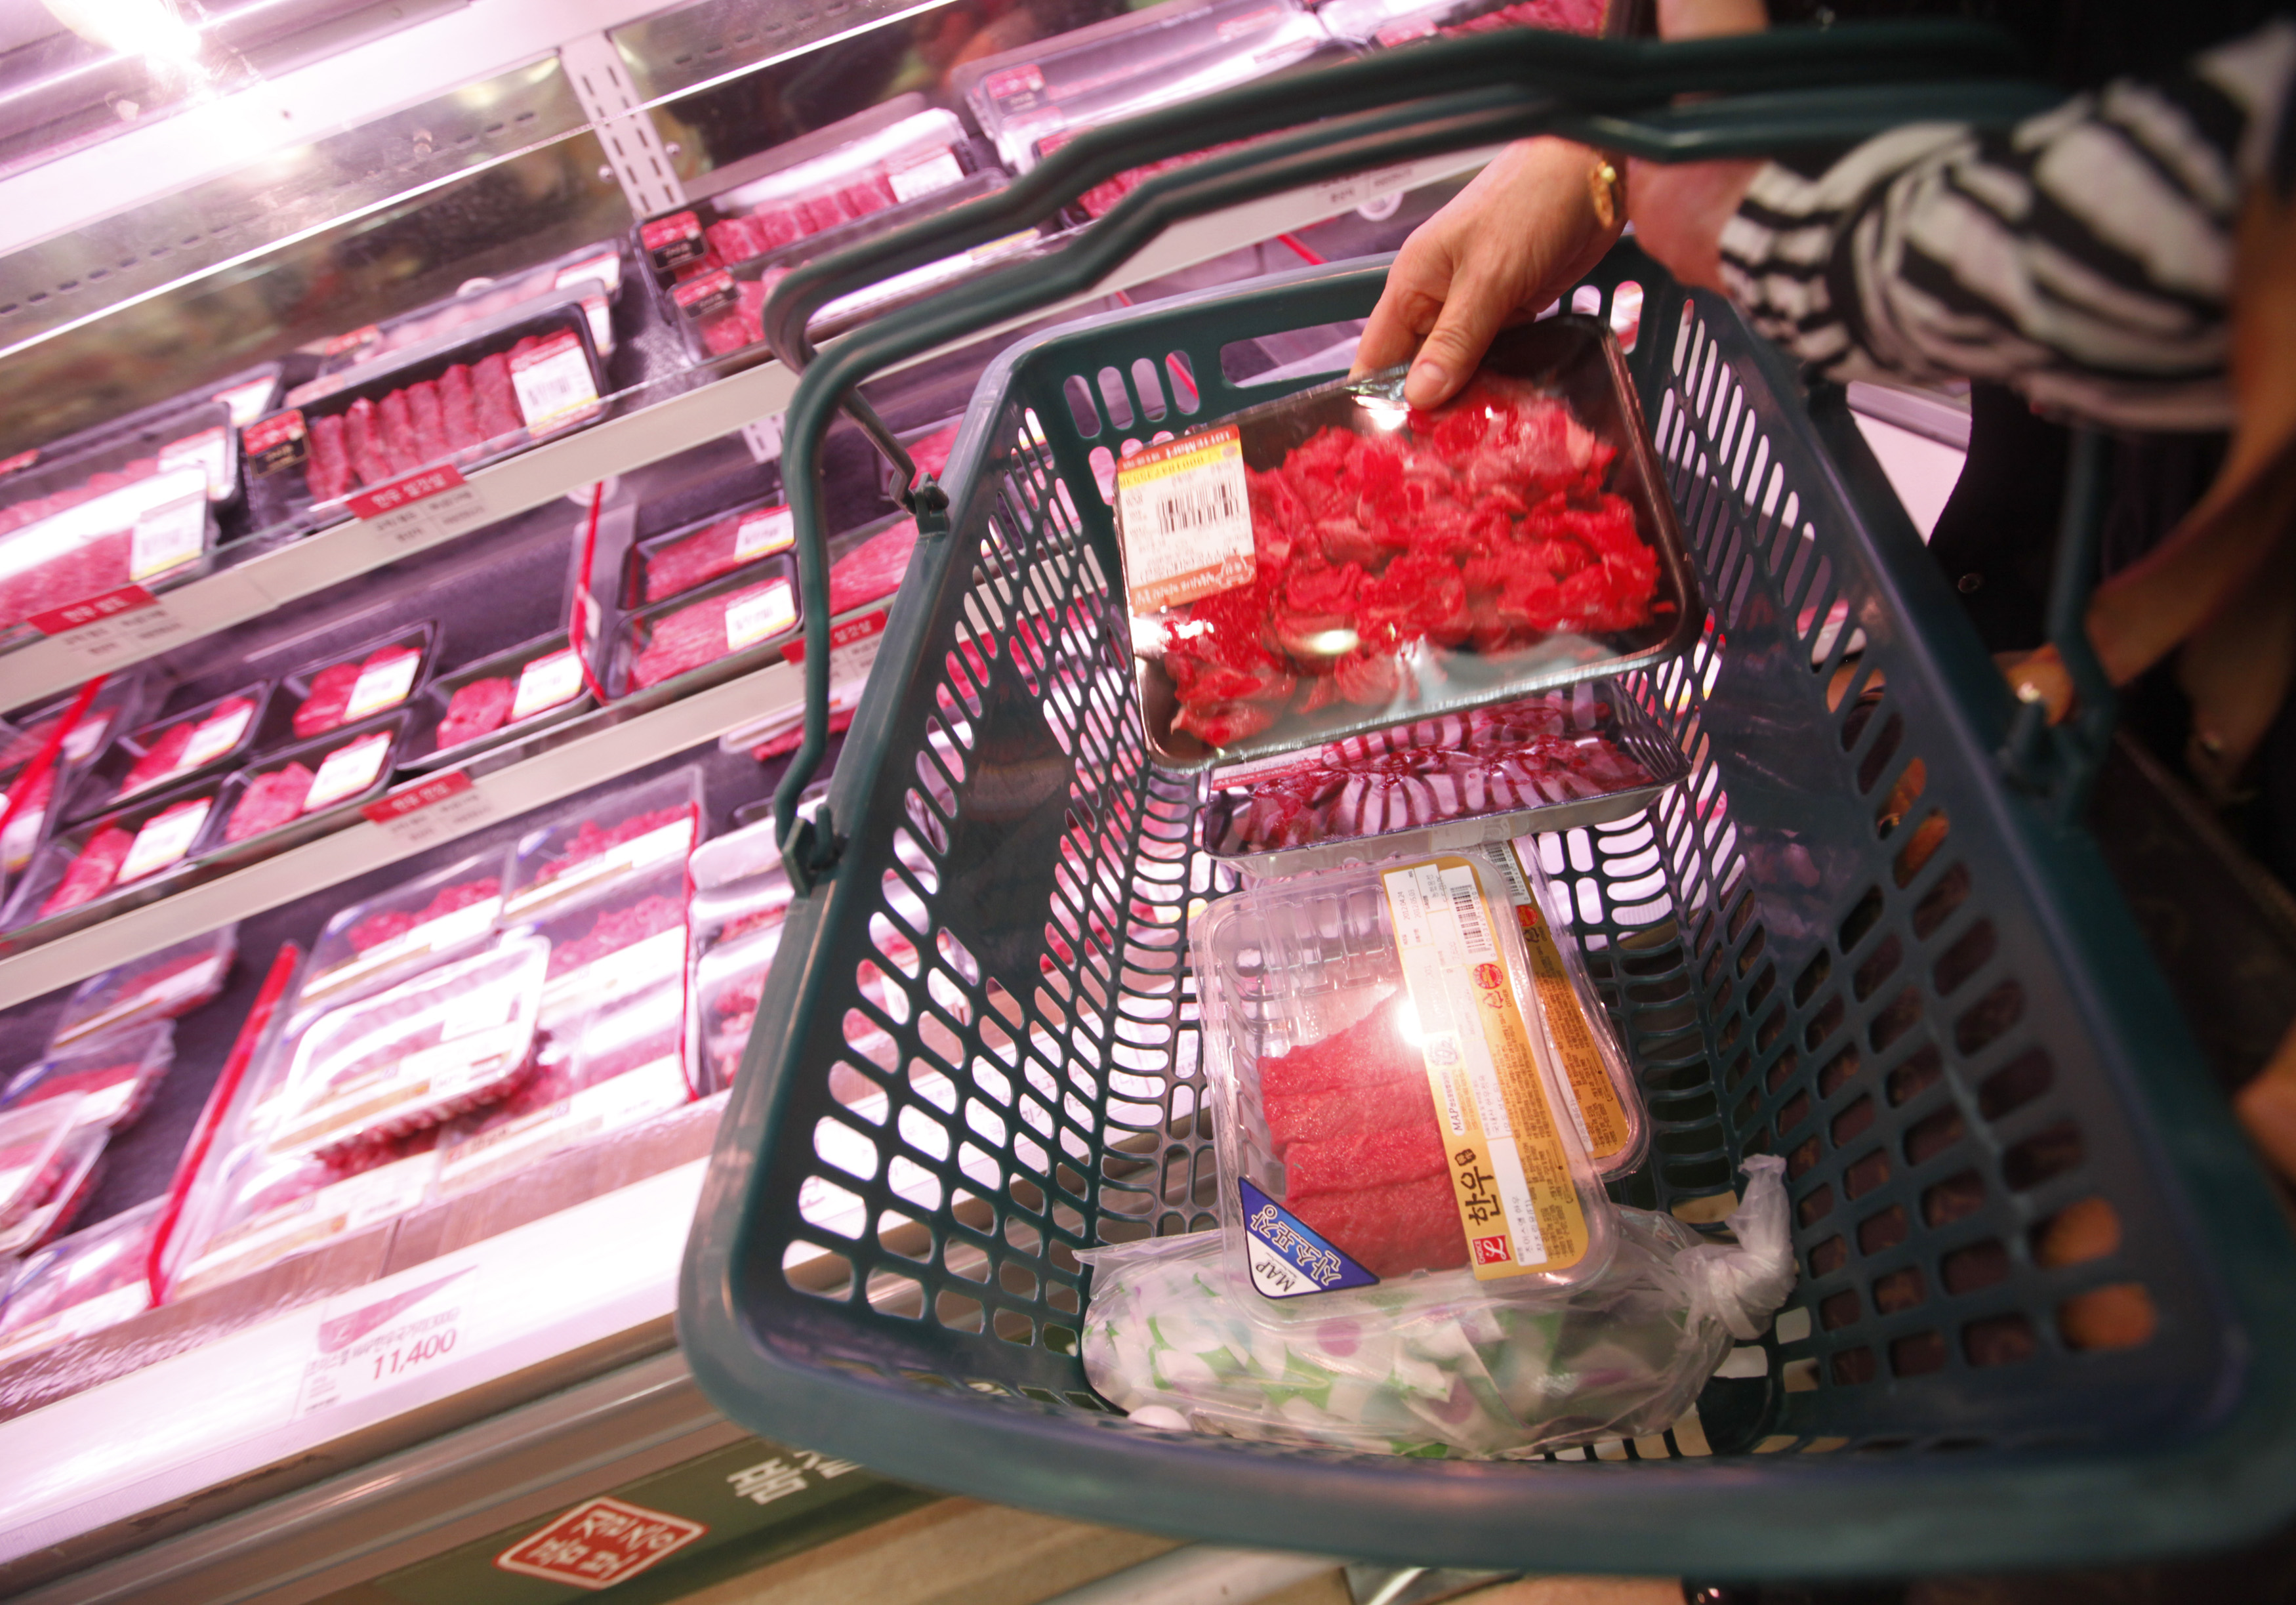 """A woman picks up local beef at Lotte Mart in Seoul April 25, 2012. Two major South Korean retailers halted sales of U.S. beef after an outbreak of mad cow disease as the country's agriculture ministry looked set to move towards banning quarantine inspections, a move that would effectively end imports. Lotte Mart, a unit of Lotte Shopping Co., said it had suspended sales due to what it said was """"customer concerns"""", as did Home Plus, a unit of Britain's Tesco PLC."""